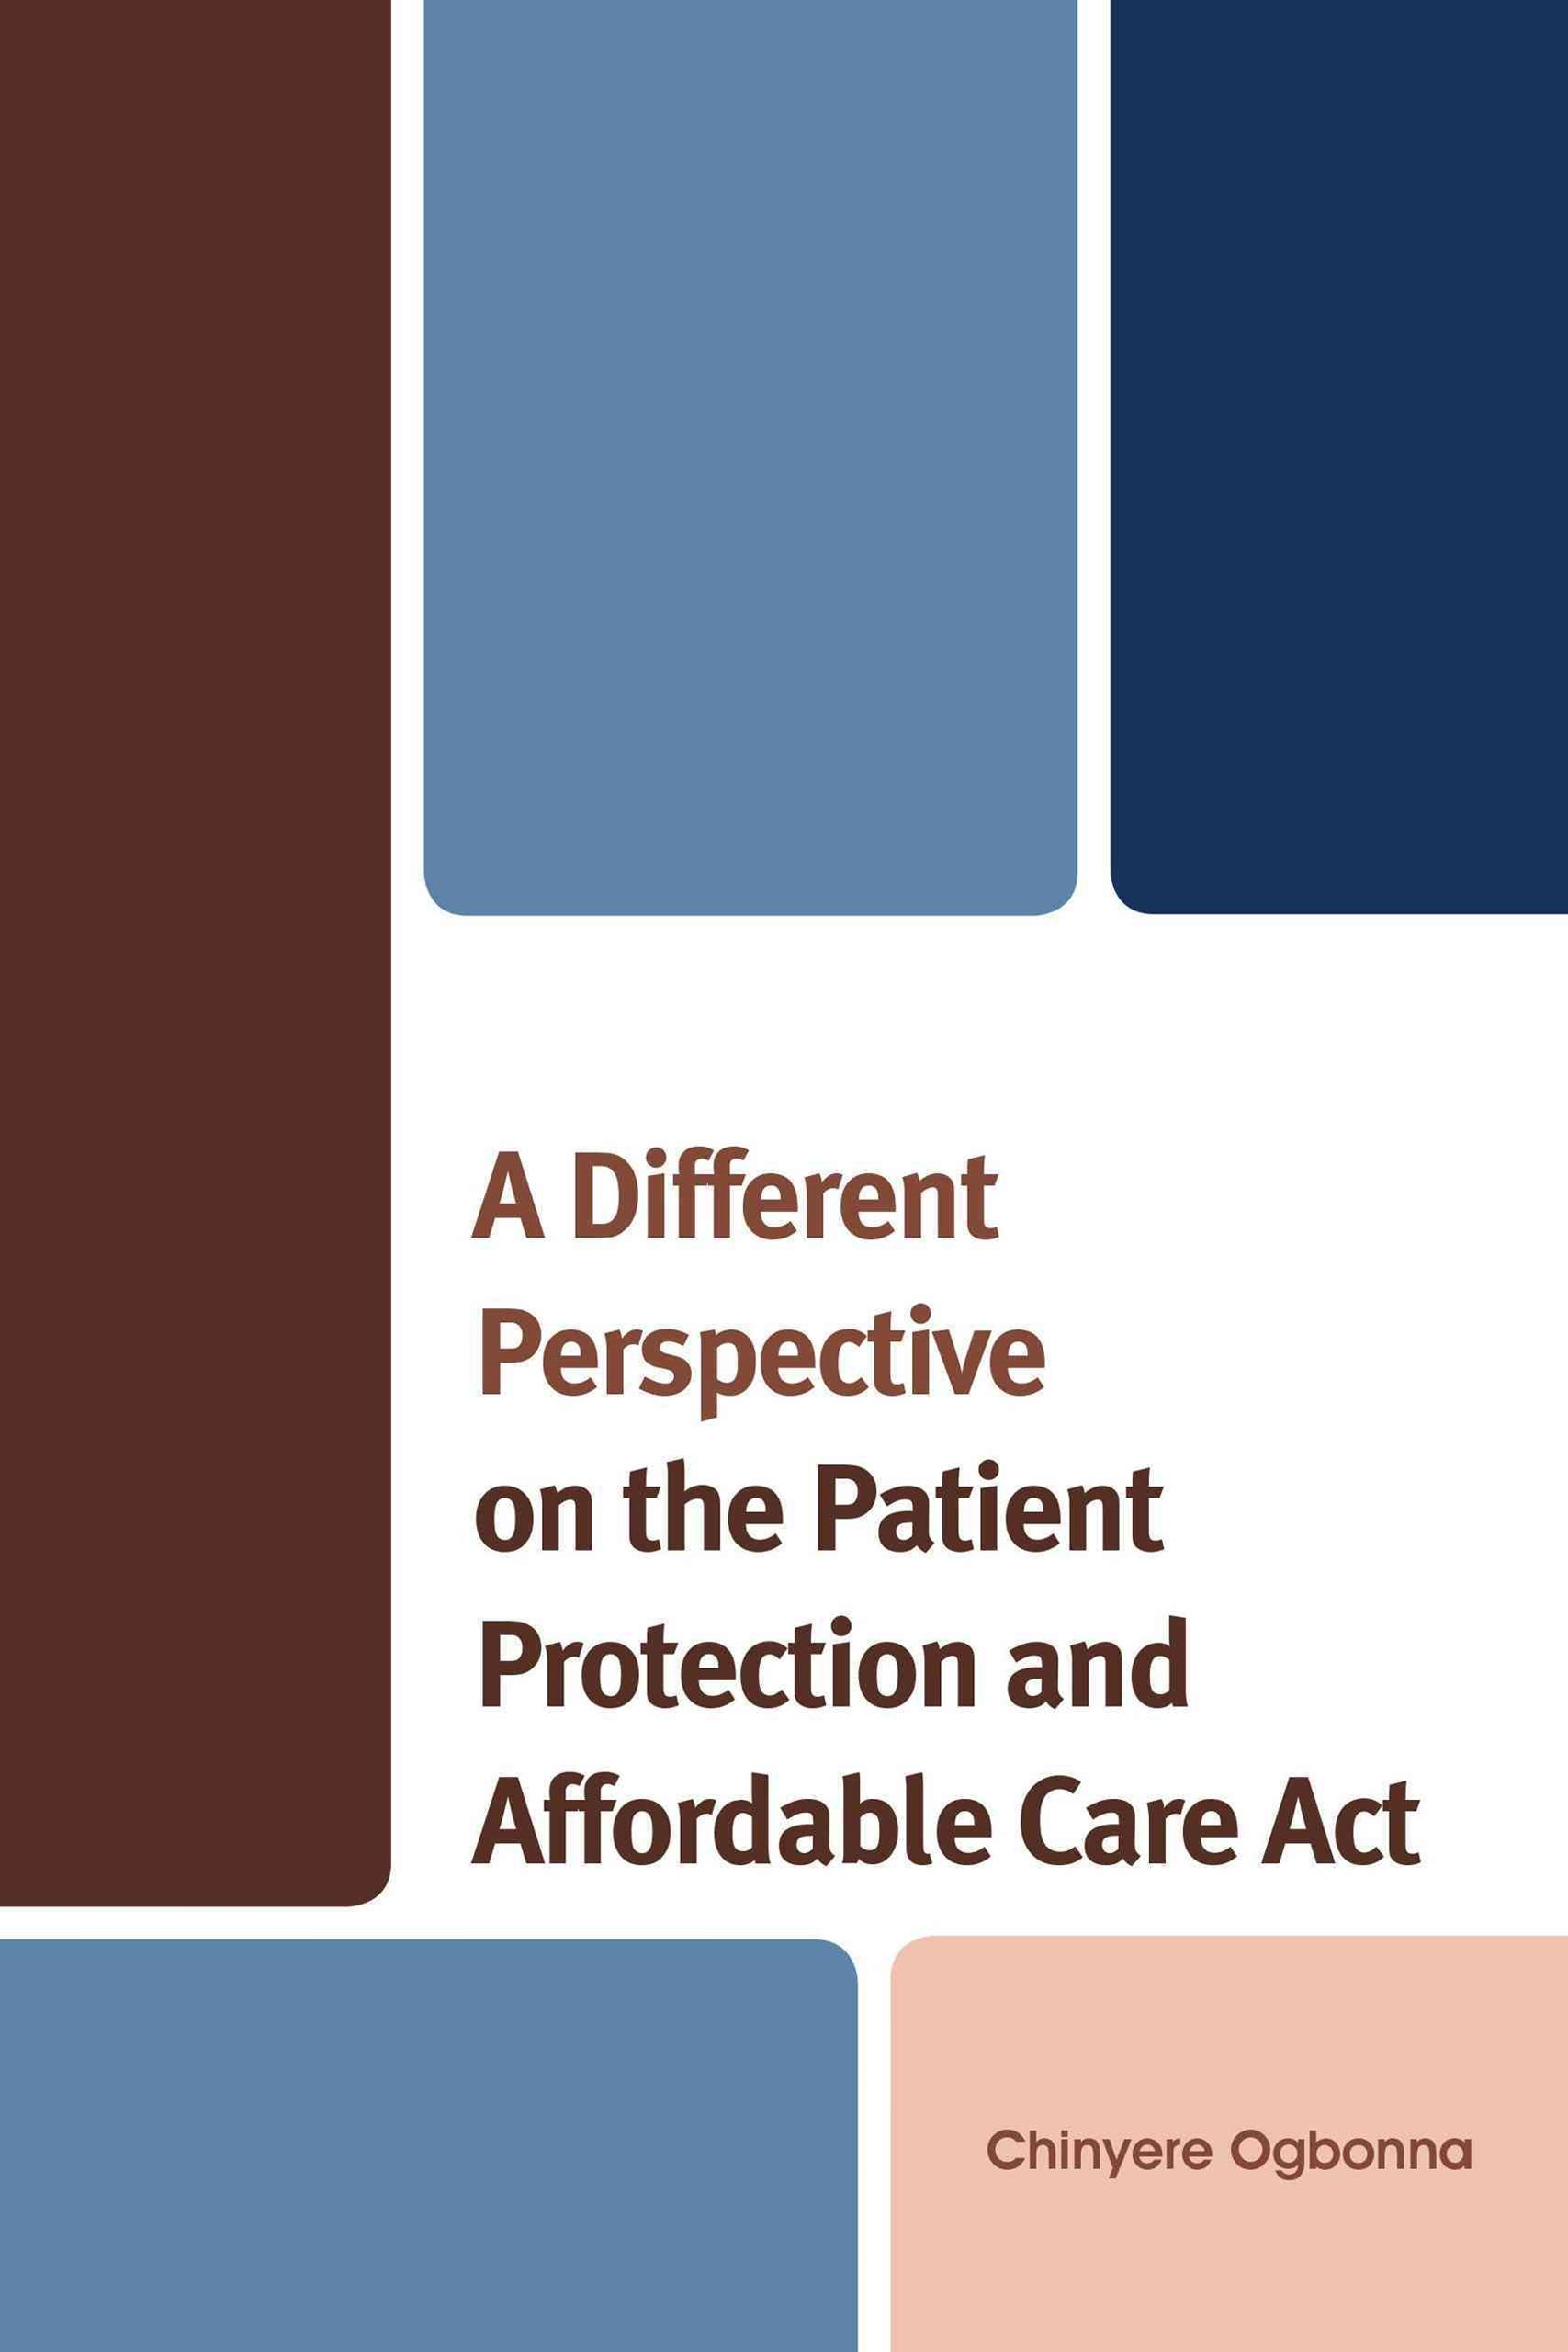 A Different Perspective on the Patient Protection and Affordable Care Act